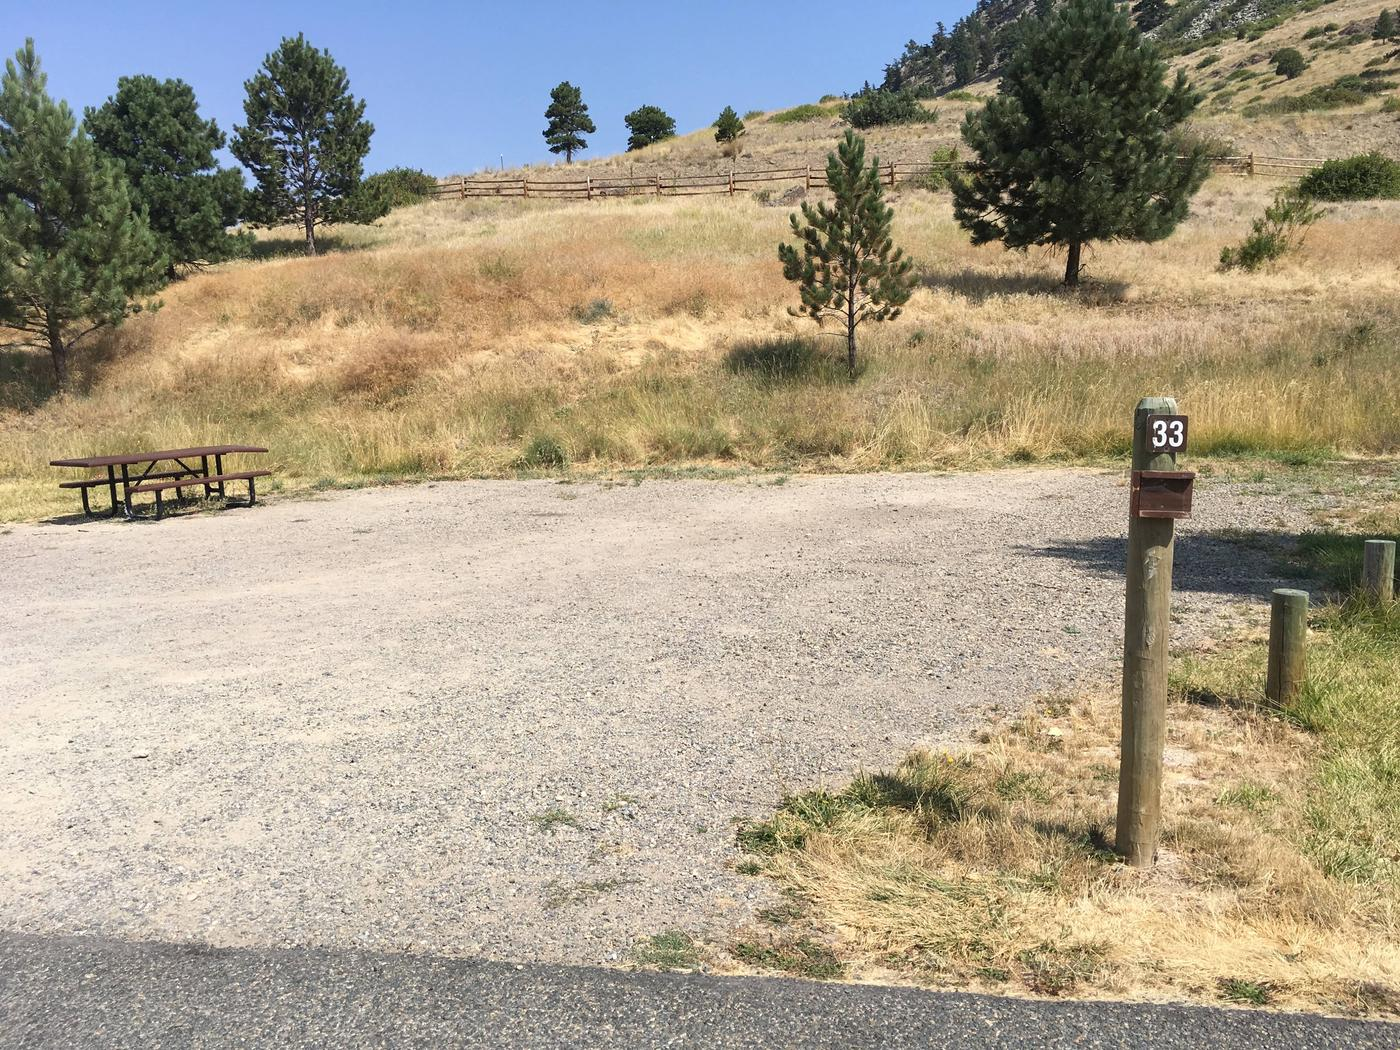 Site 33 BLM Holter Lake Campground. Paved access to campsite. Graveled campsite with picnic table and fire pit. Trees, shrubs and Beartooth Road above campsite.Site 33 BLM Holter Lake Campground